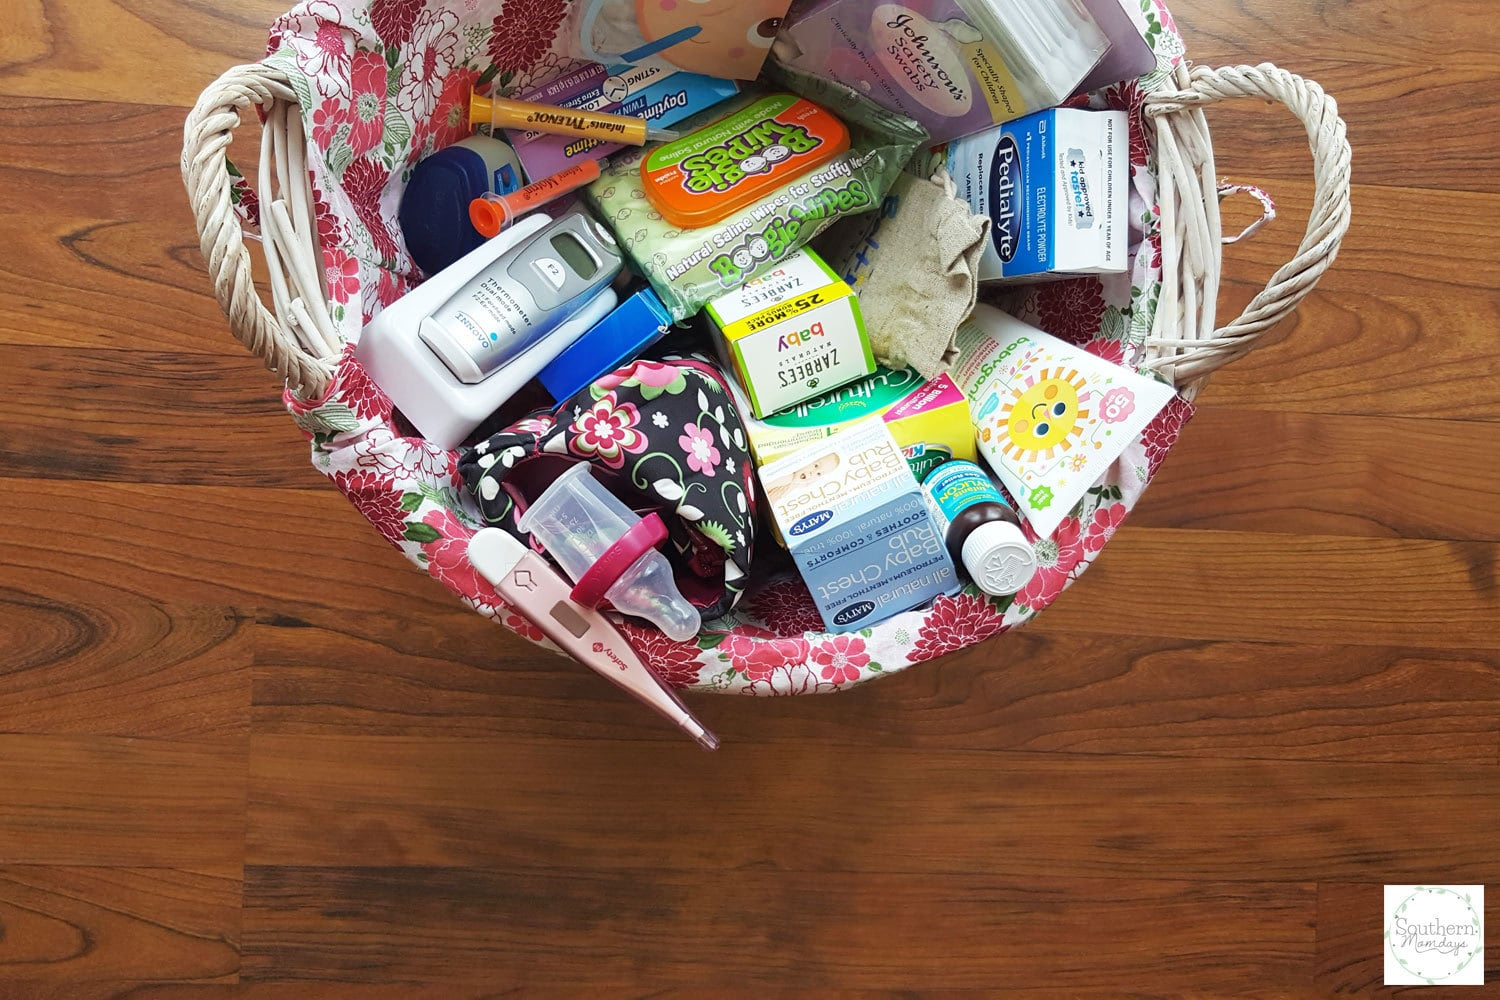 Basket full of items for your baby registry and starter medicine cabinet for baby's first year, featured on the Southern Momdays blog